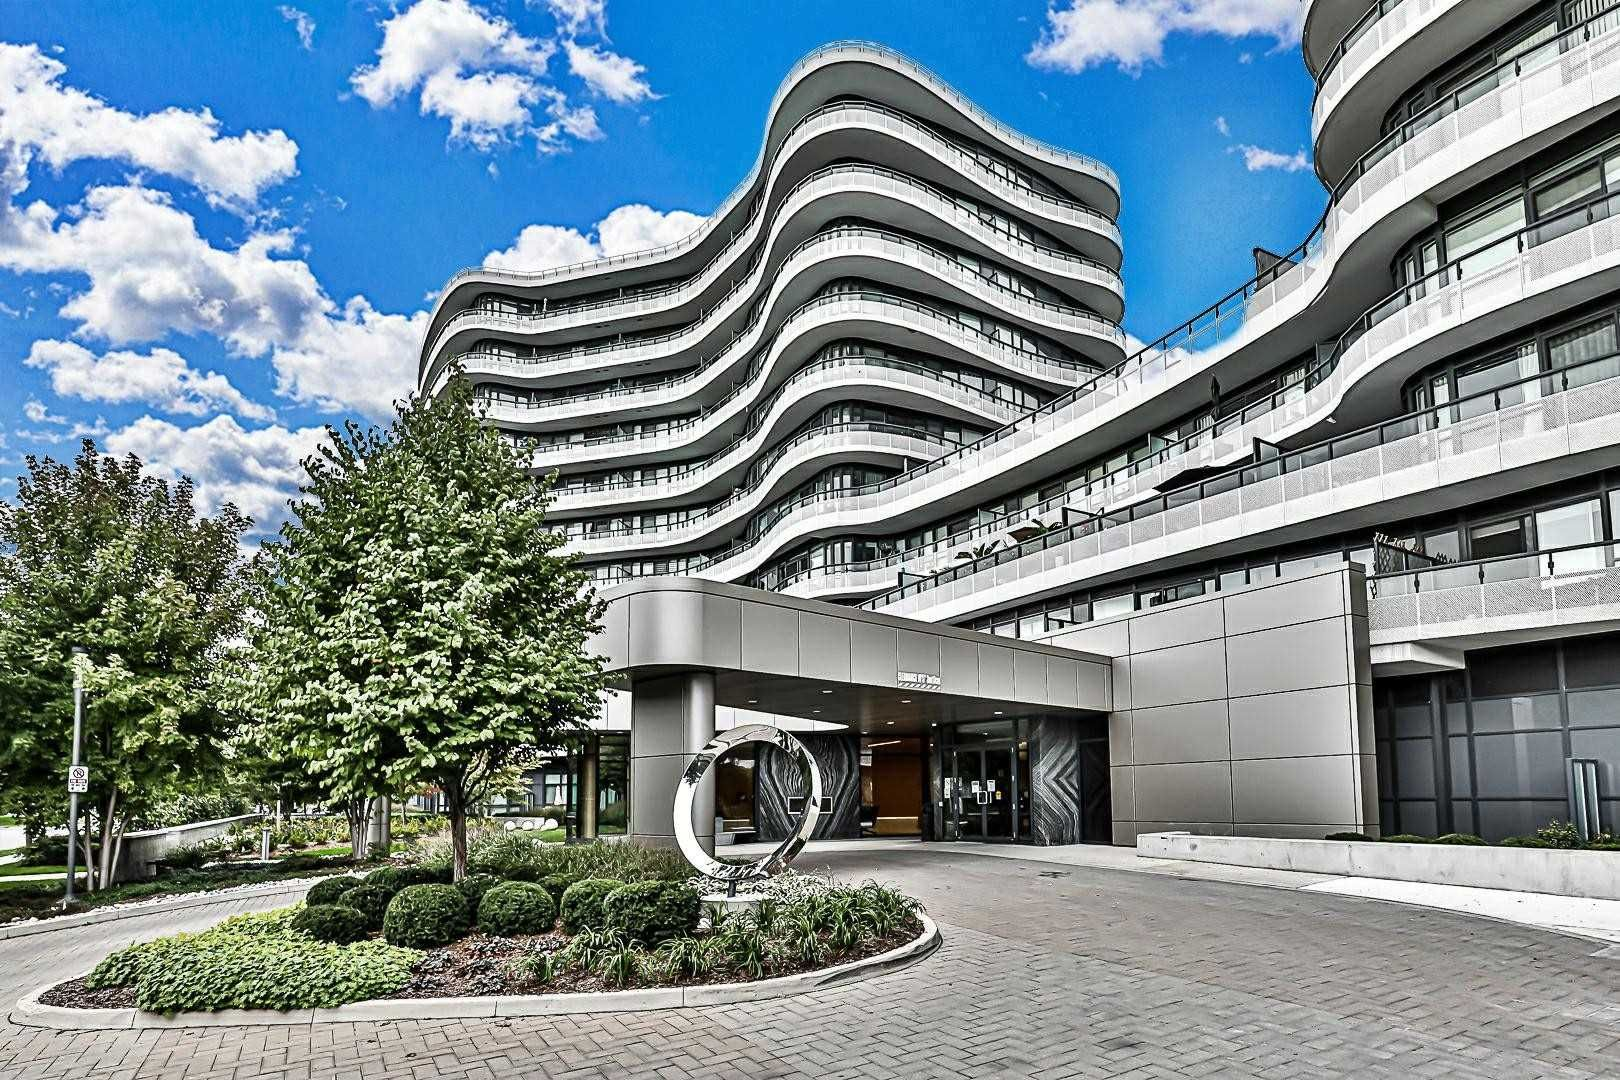 99 The Donway Way W, unit 520 for sale in Don Mills - image #2